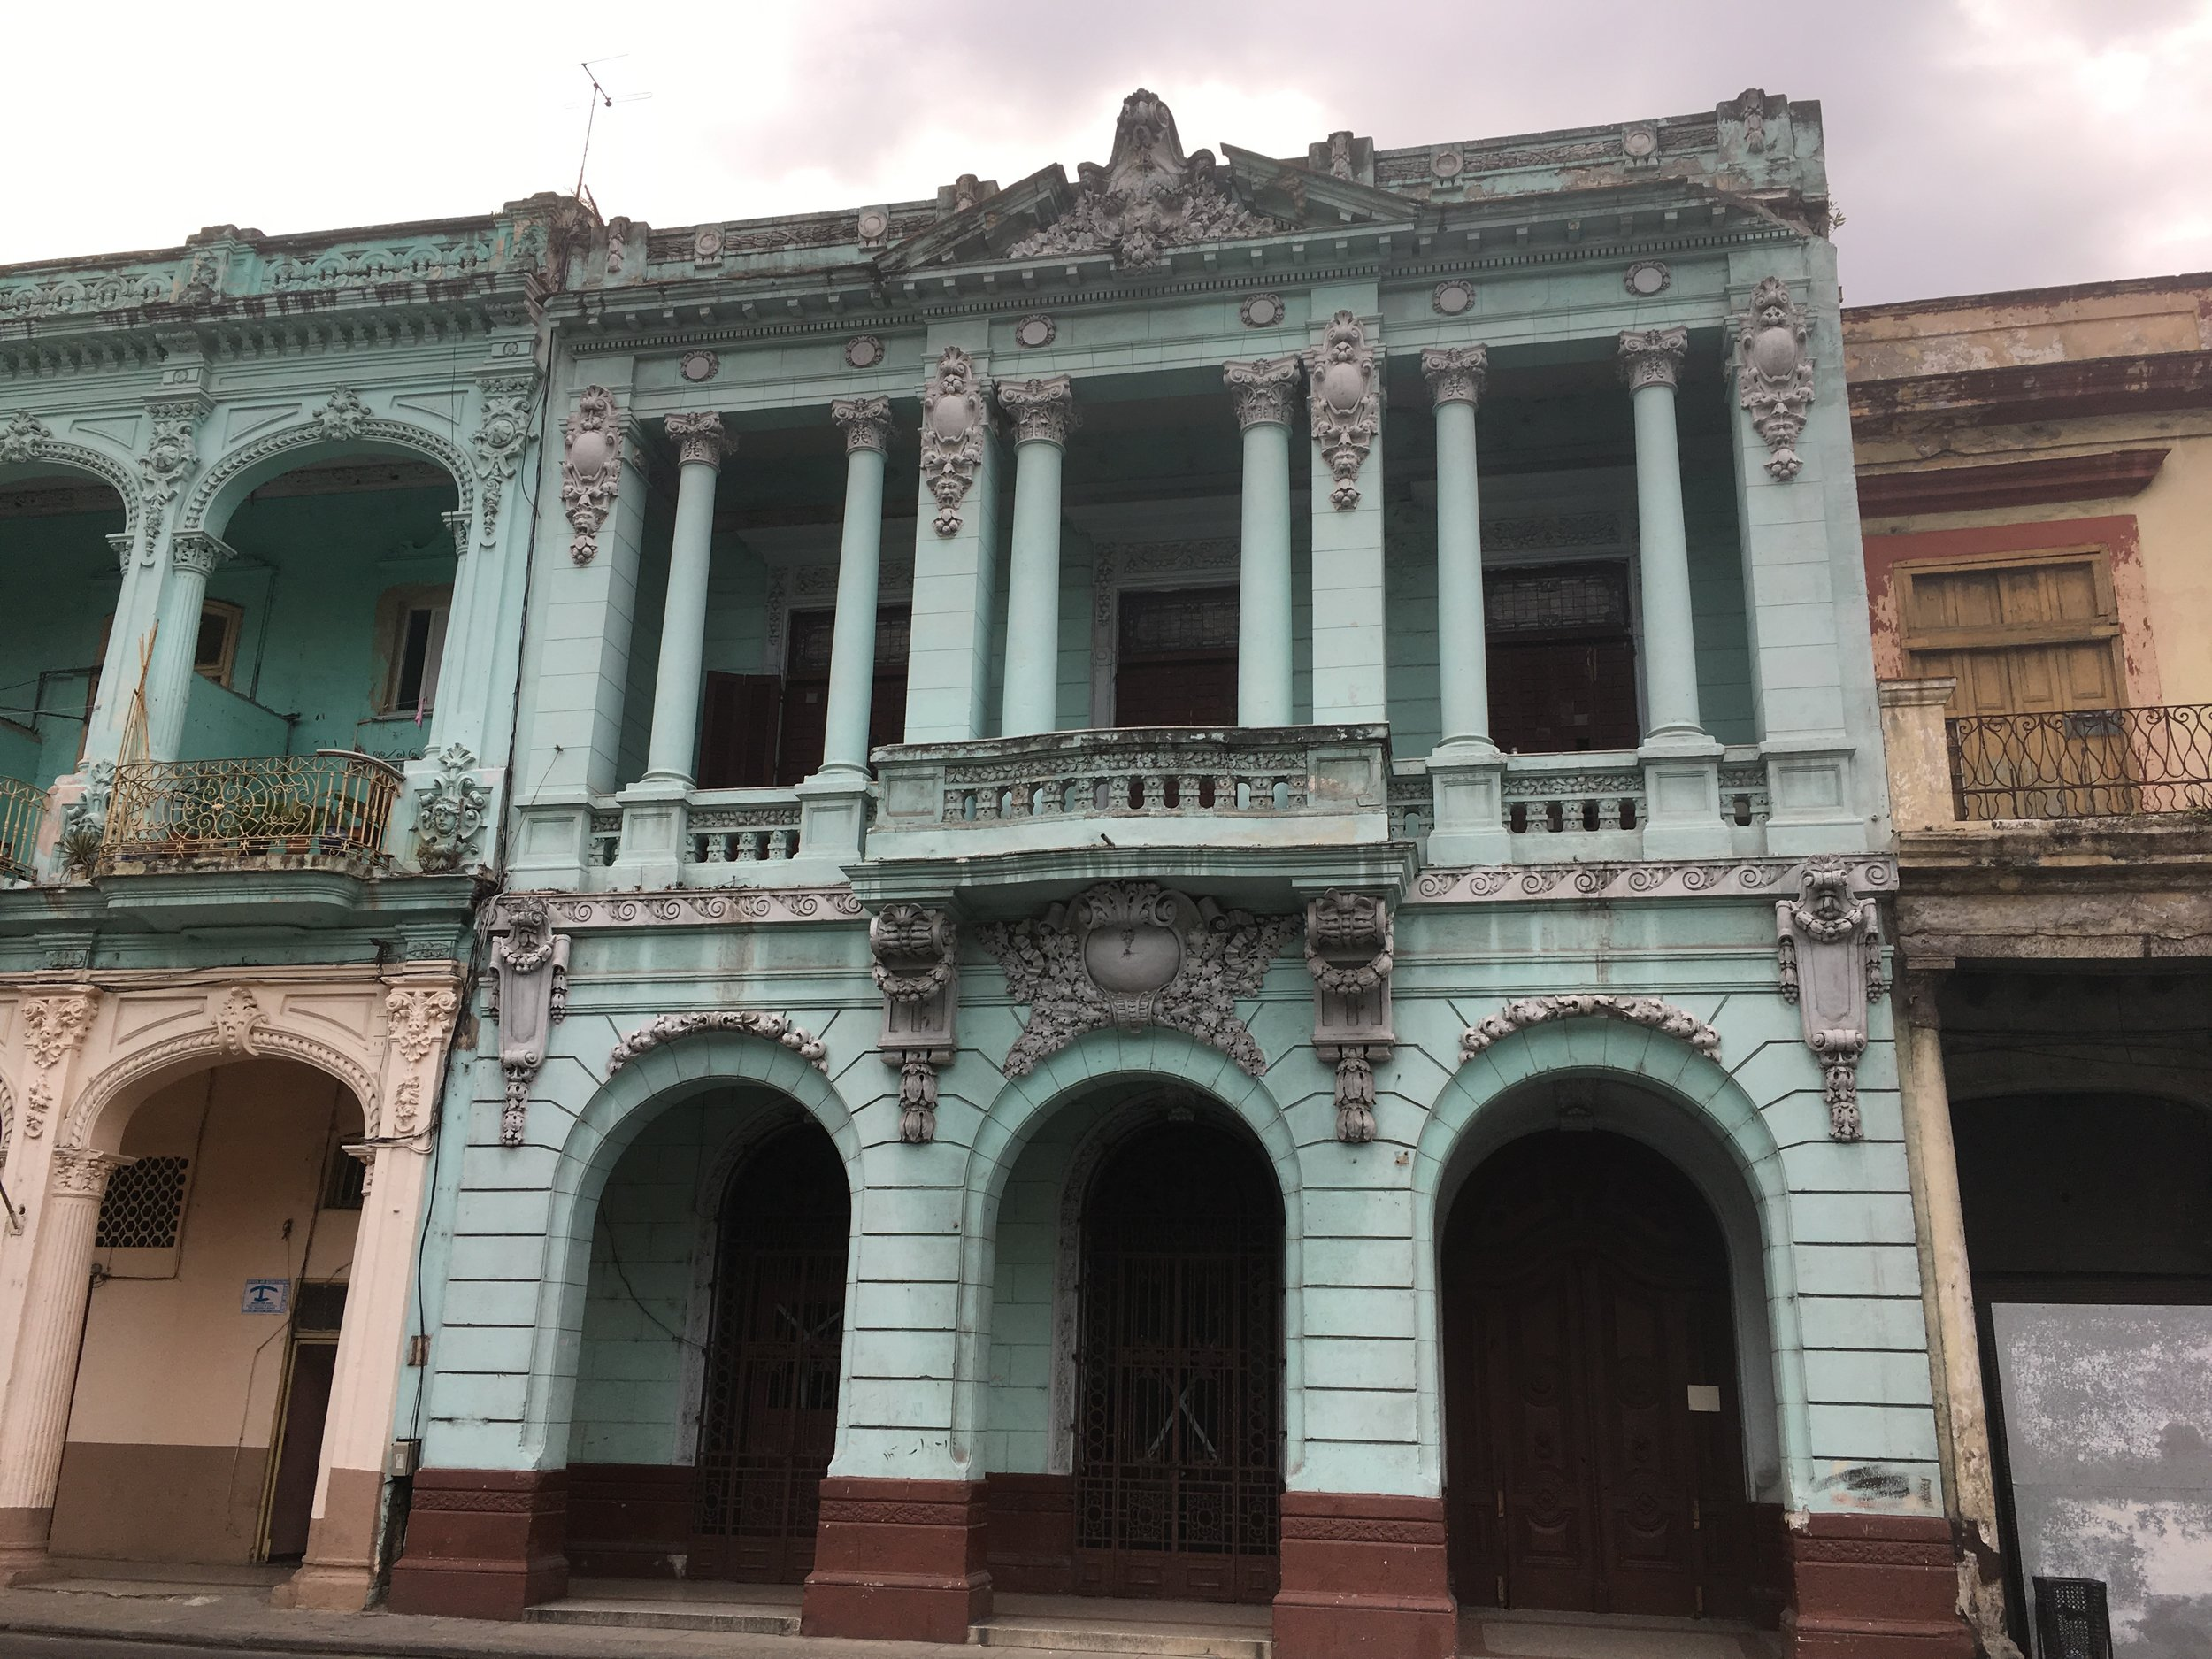 Building on Paseo del Prado, the big street that separates Old Havana and Centro Habana